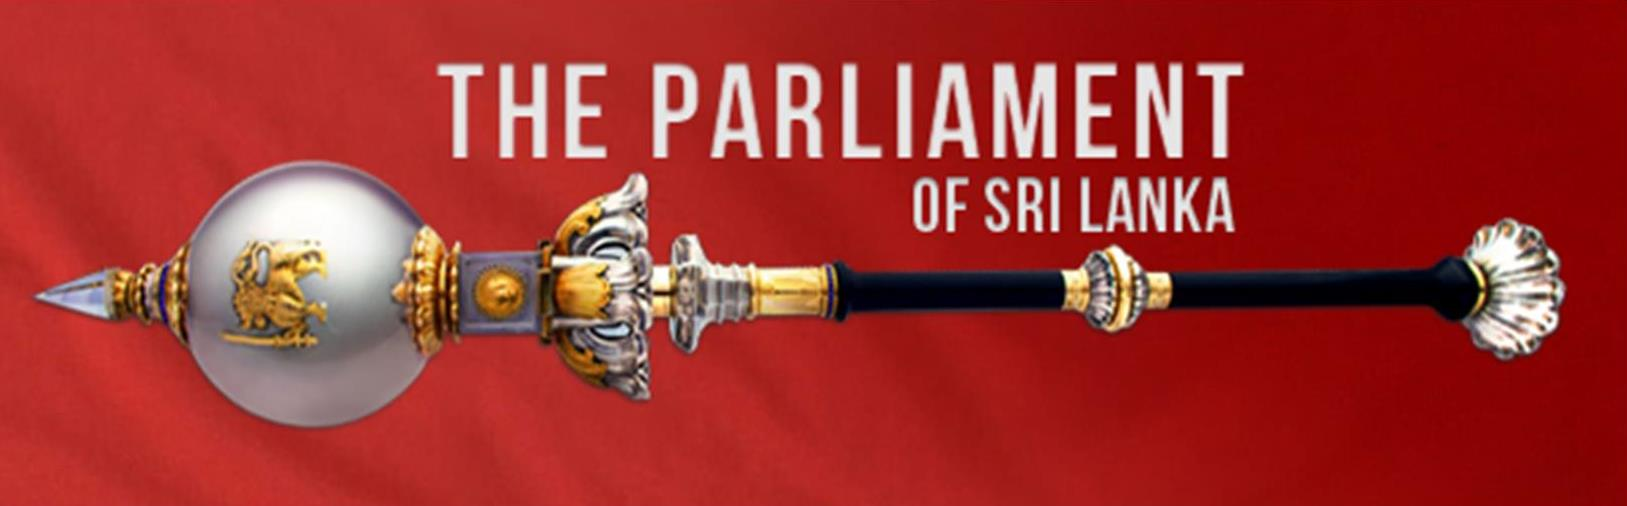 Parliament of SL